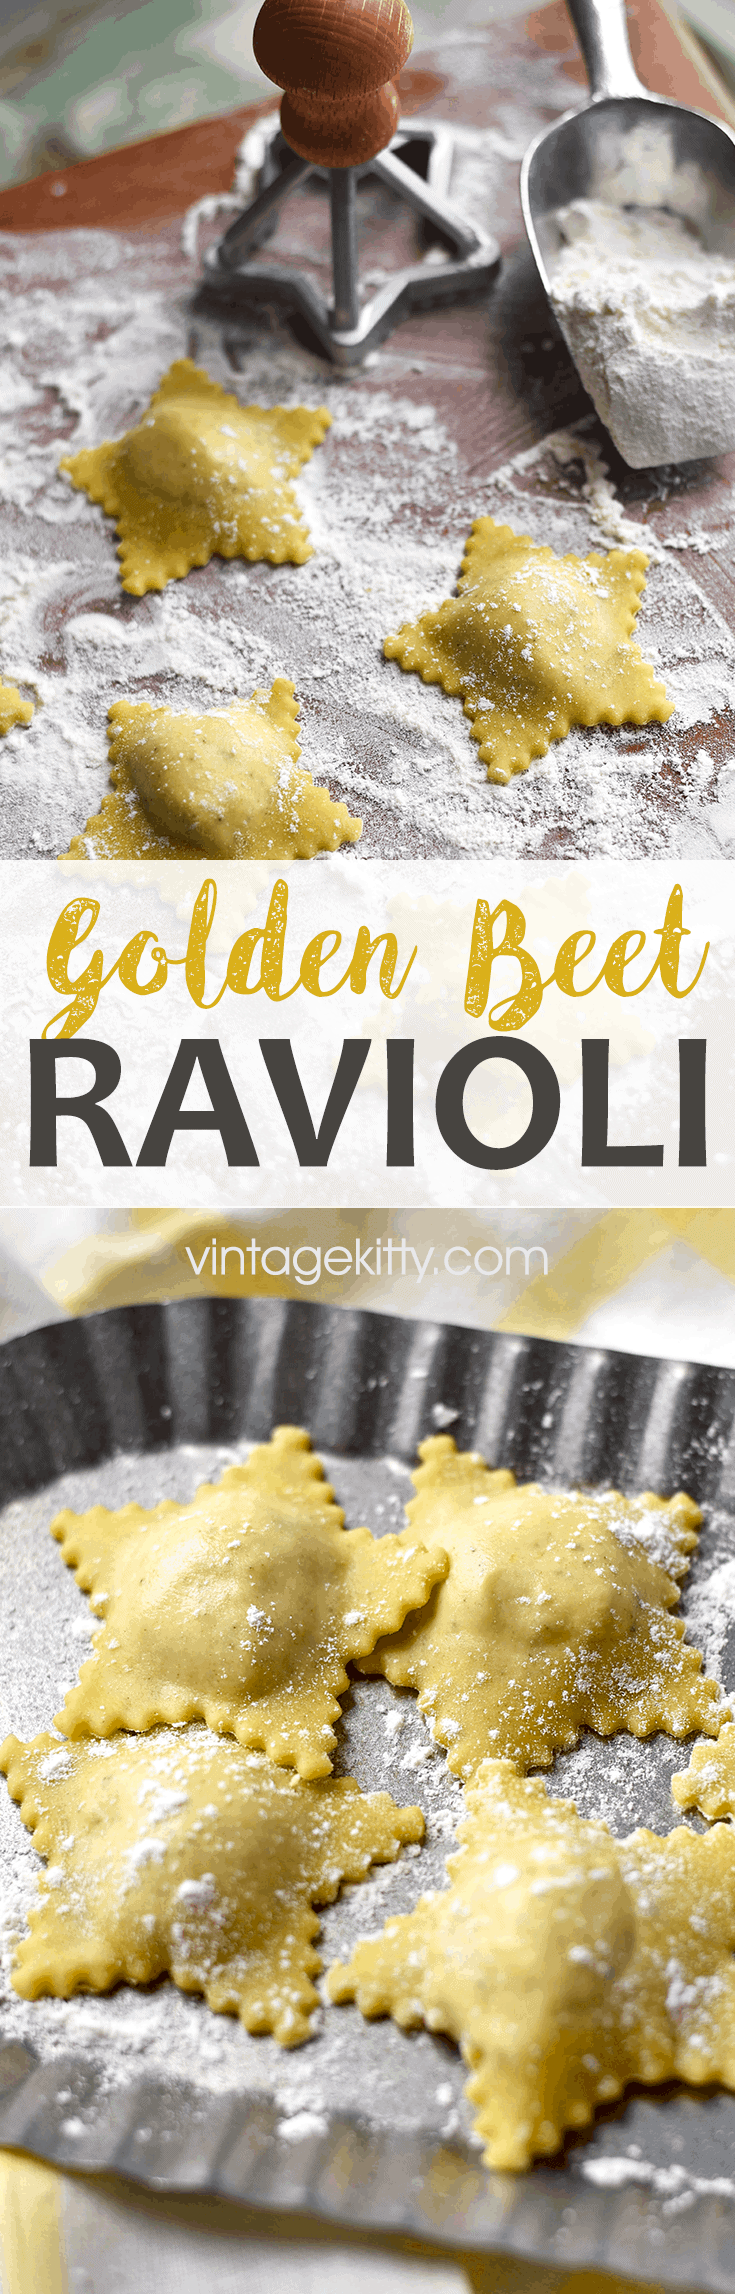 Golden Beet Ravioli Pin - Golden Beet Ravioli